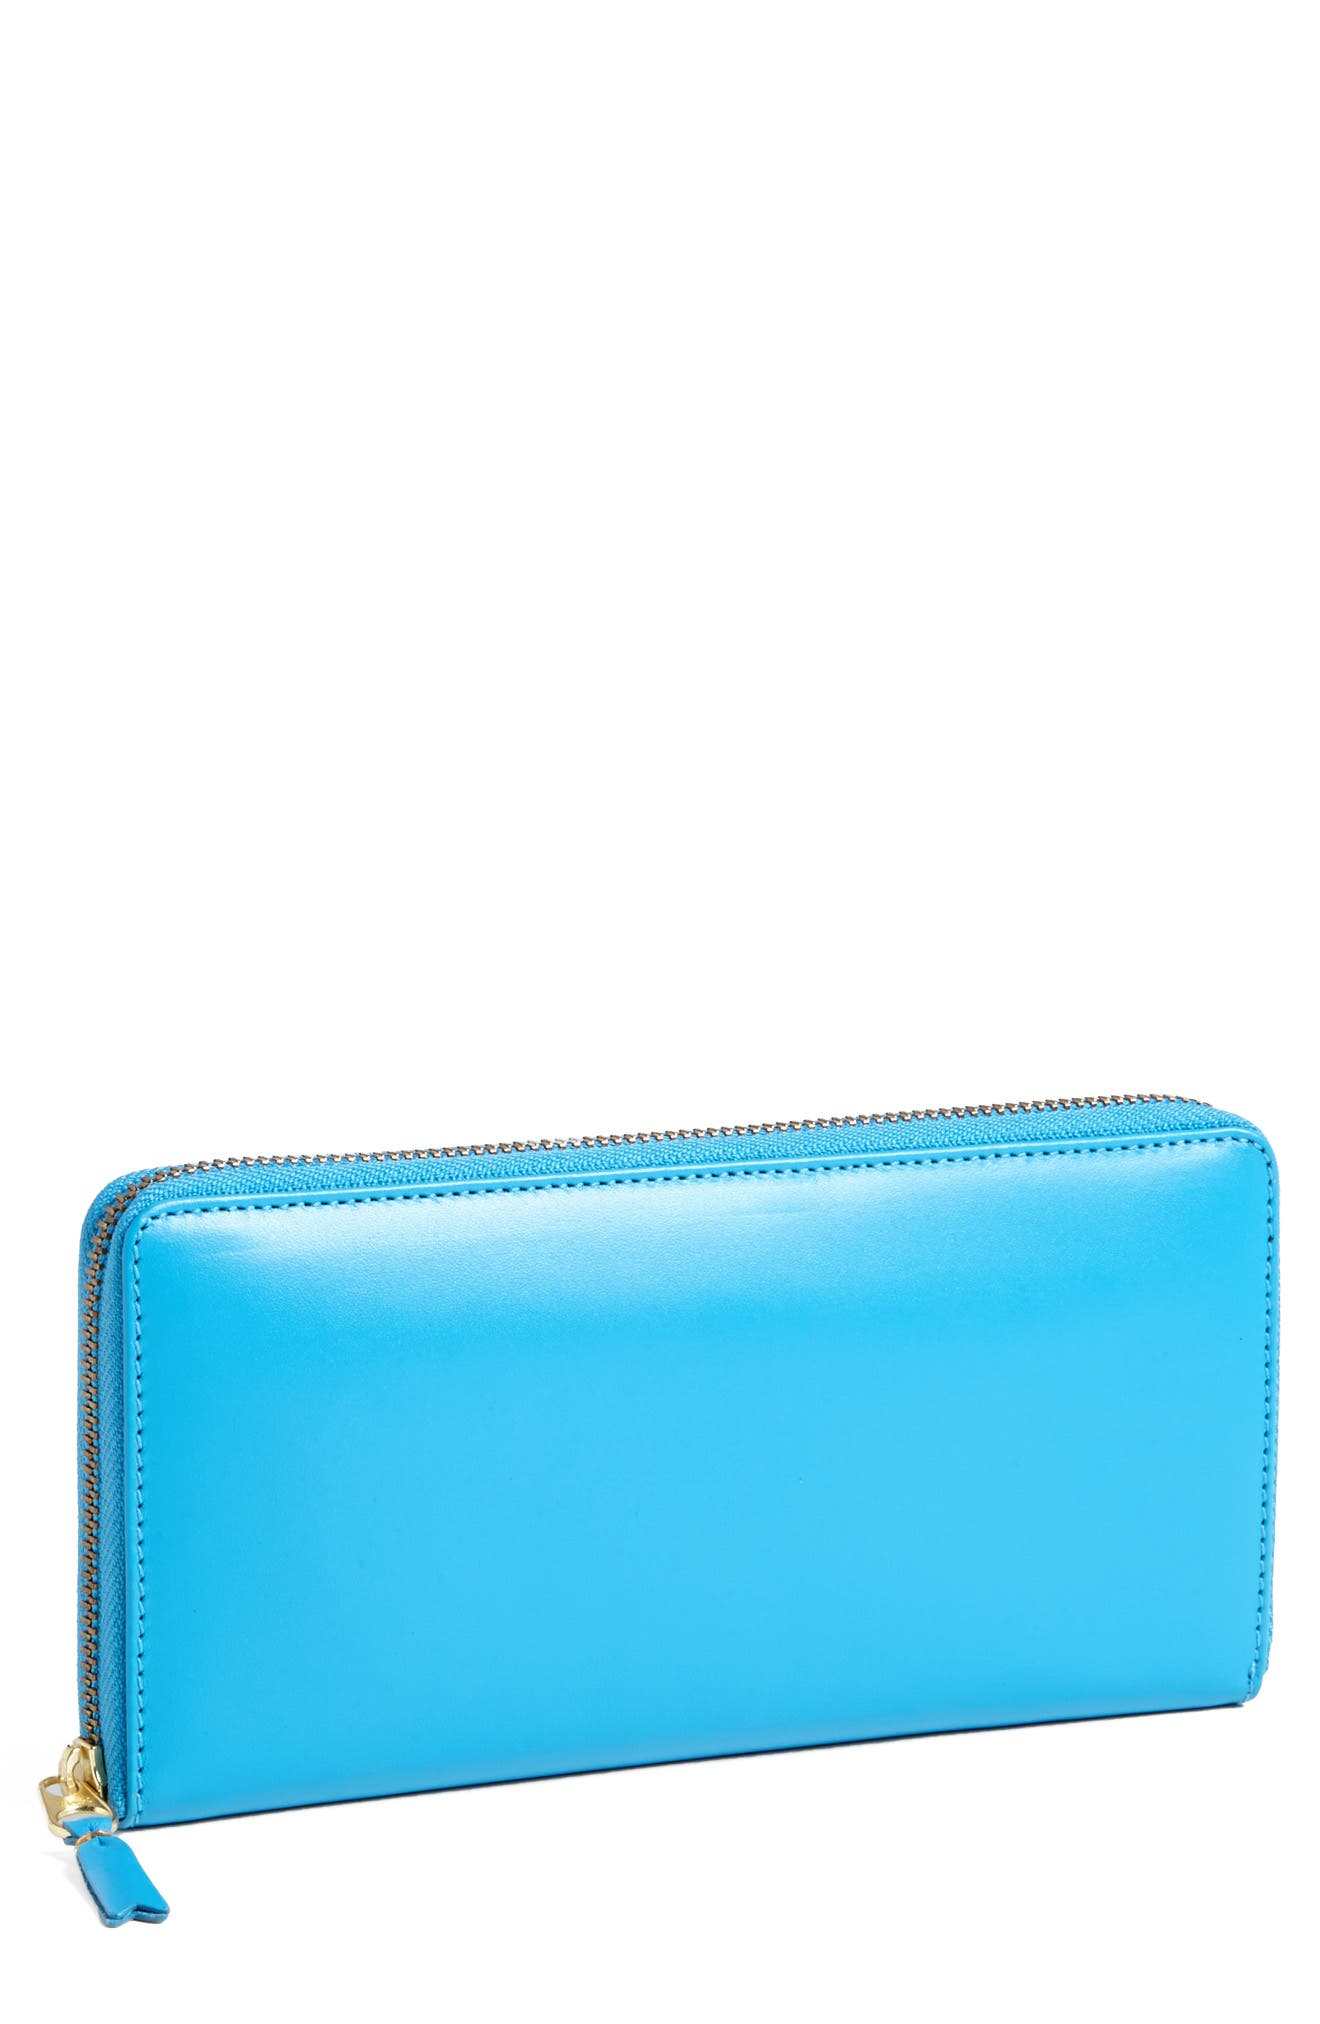 COMME DES GARÇONS, Continental Long Wallet, Alternate thumbnail 2, color, BLUE